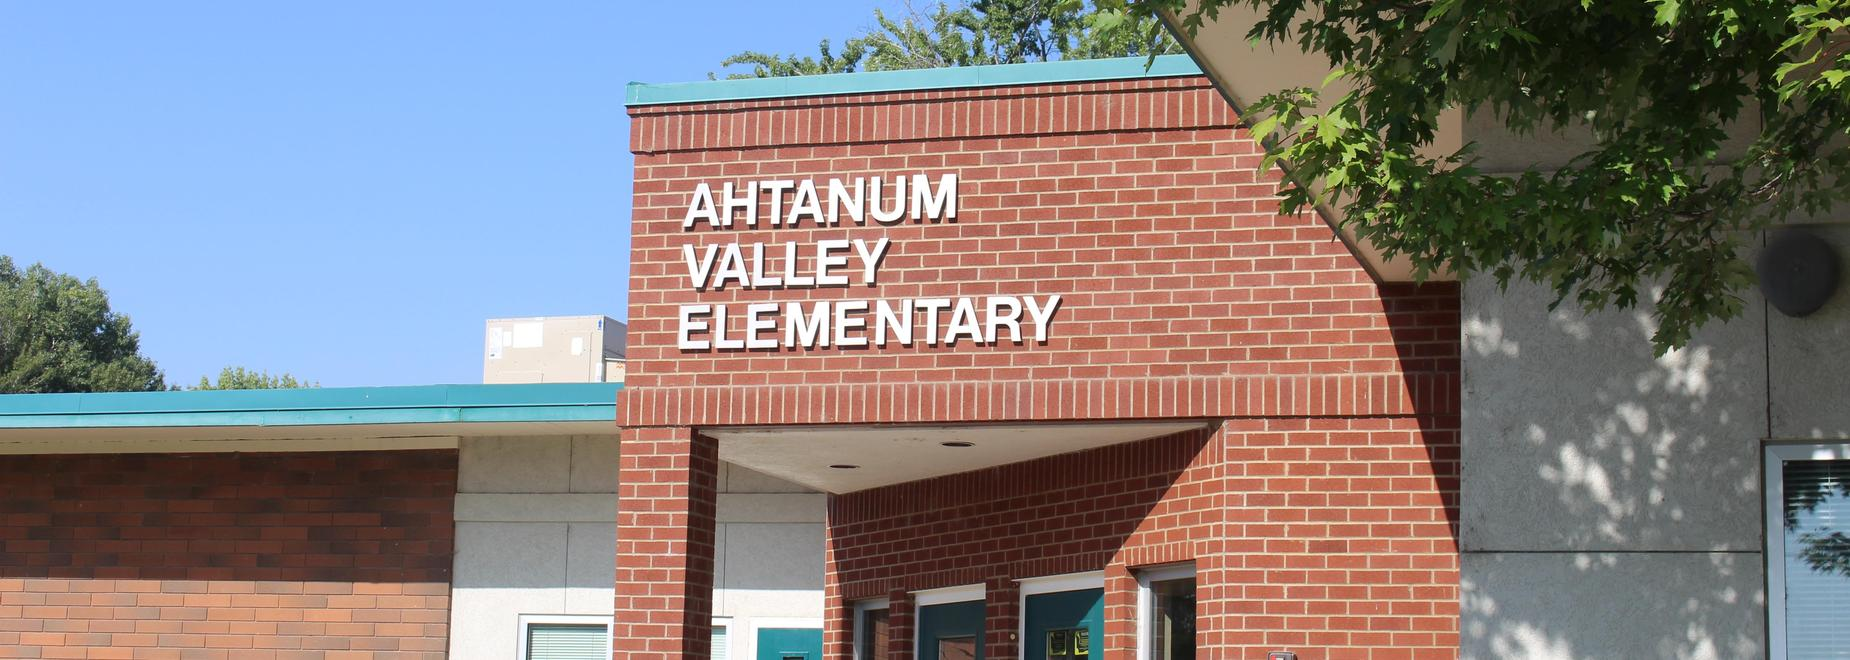 Ahtanum Valley Elementary entrance